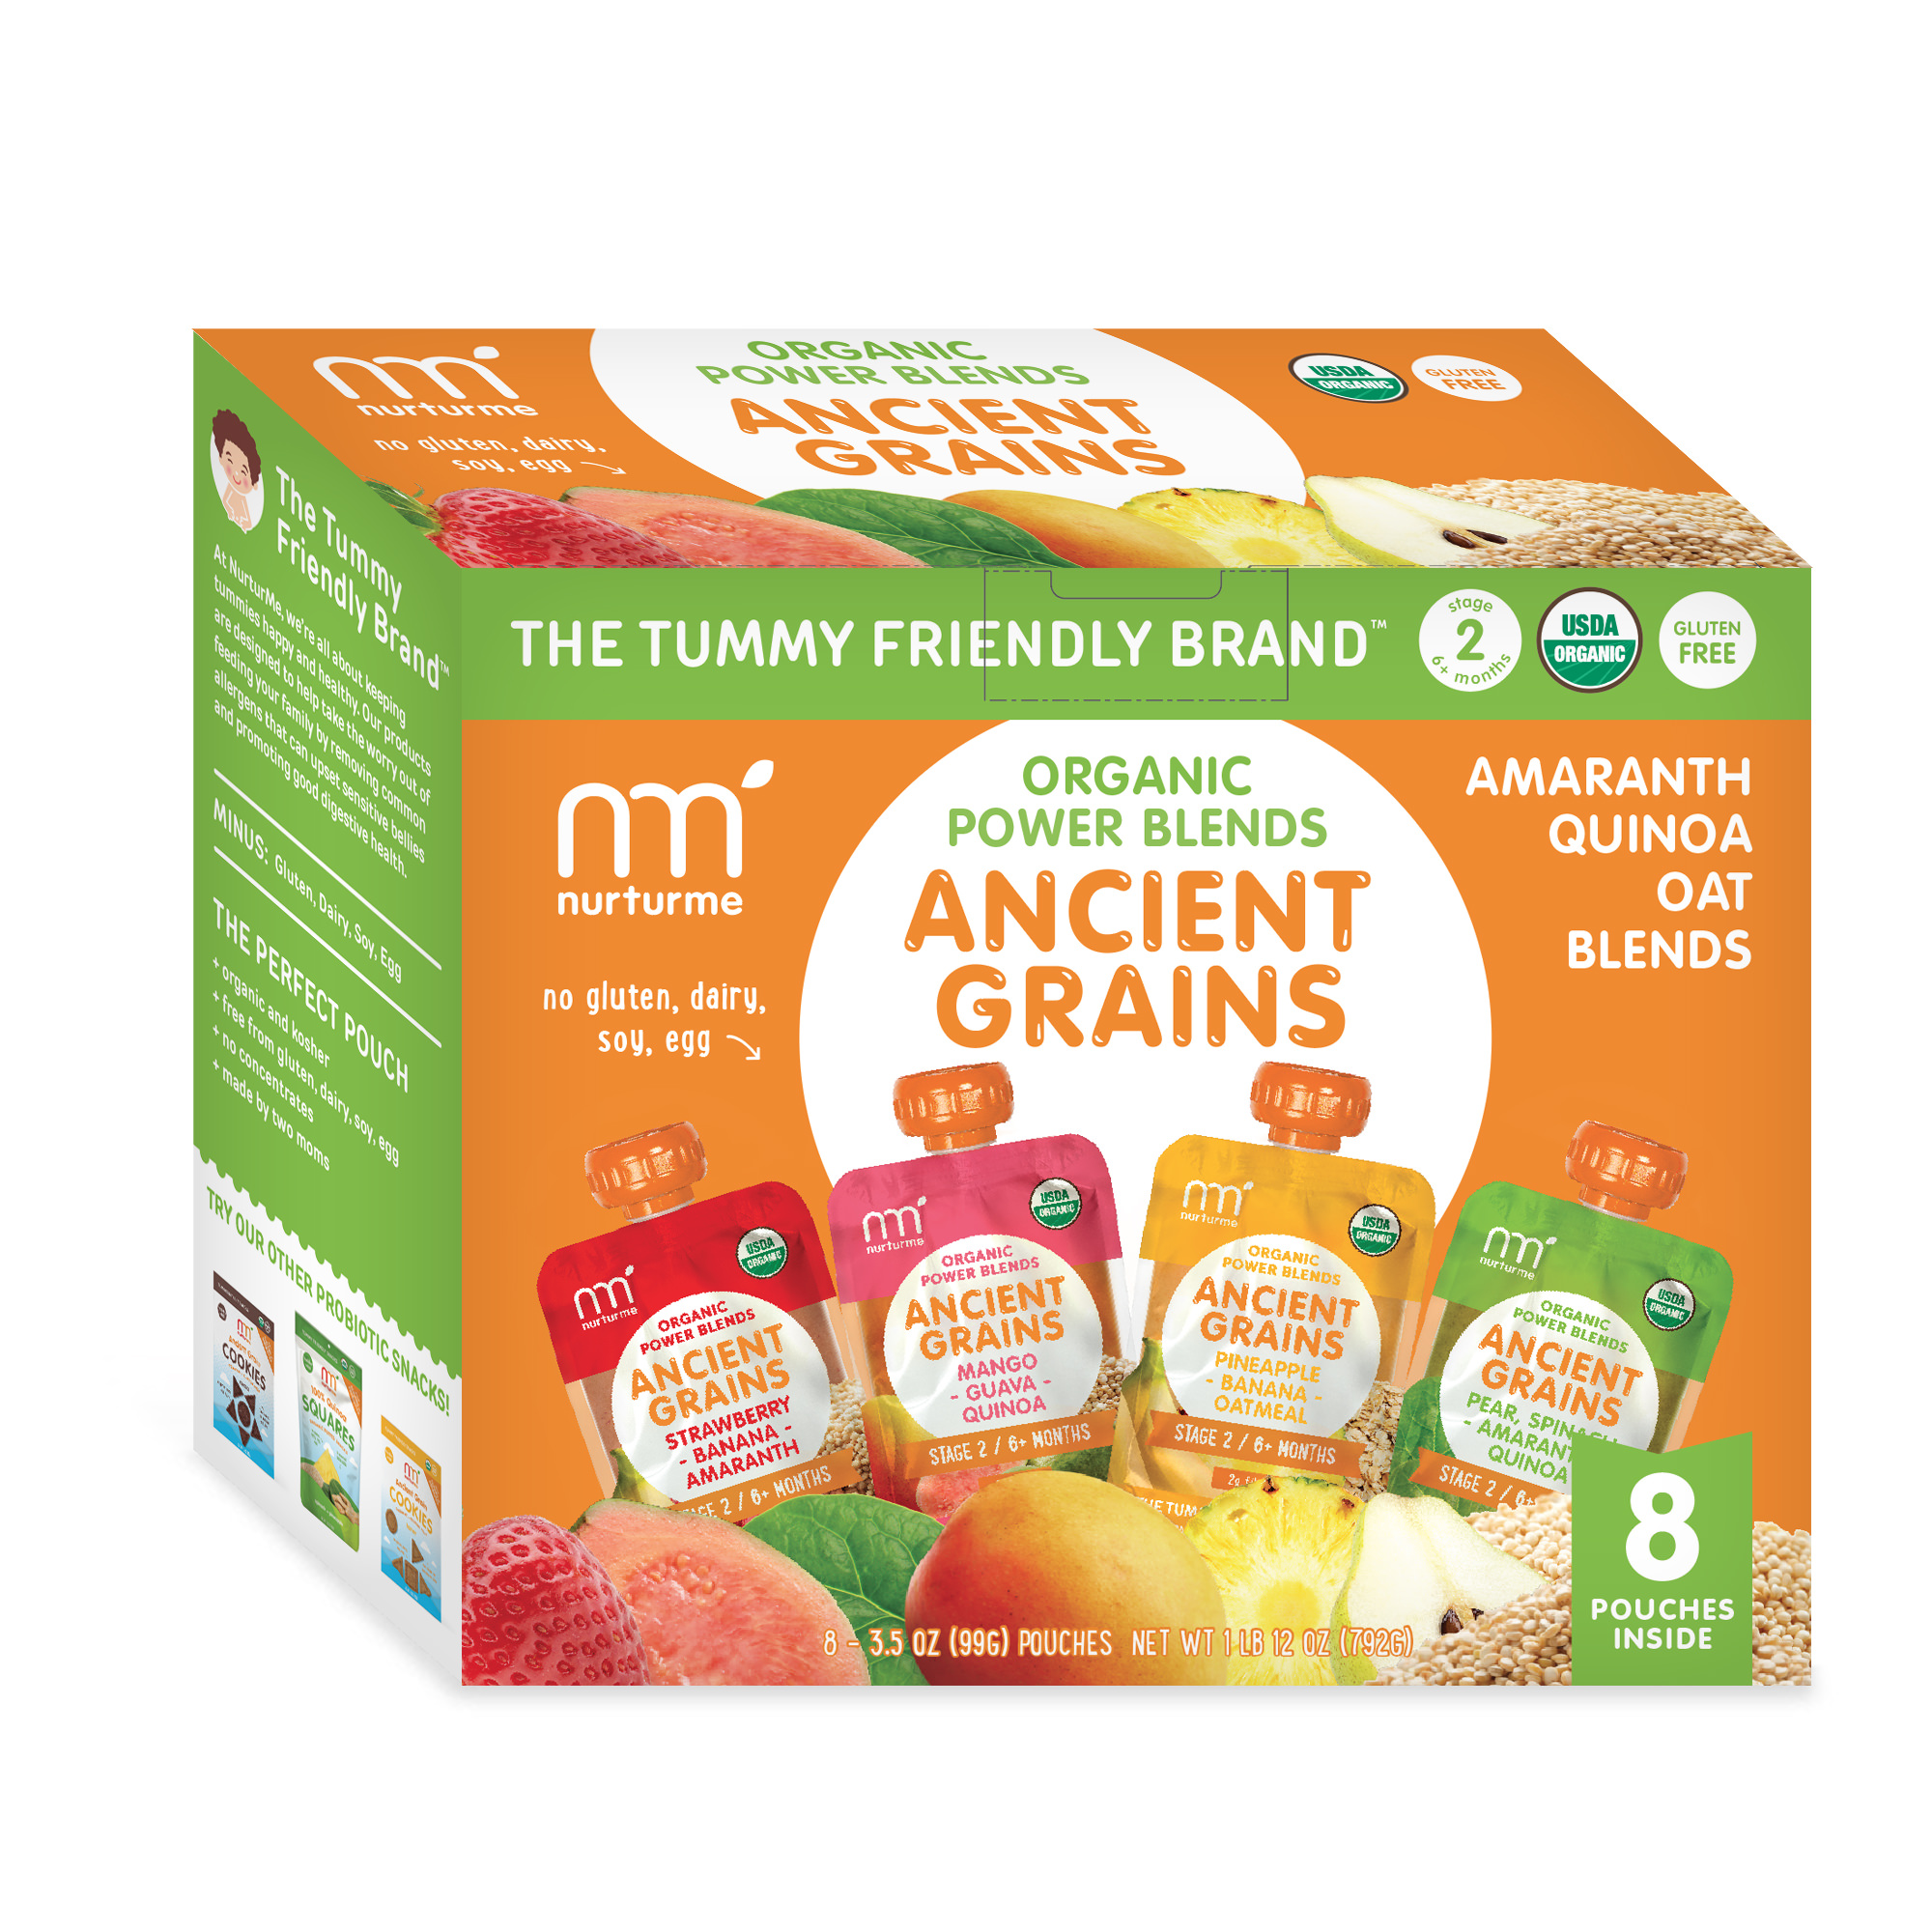 NurturMe Ancient Grain Stage 2 Power Blend Organic Baby Food Variety Pack 3.5 Ounce Pouch - 8 Pack